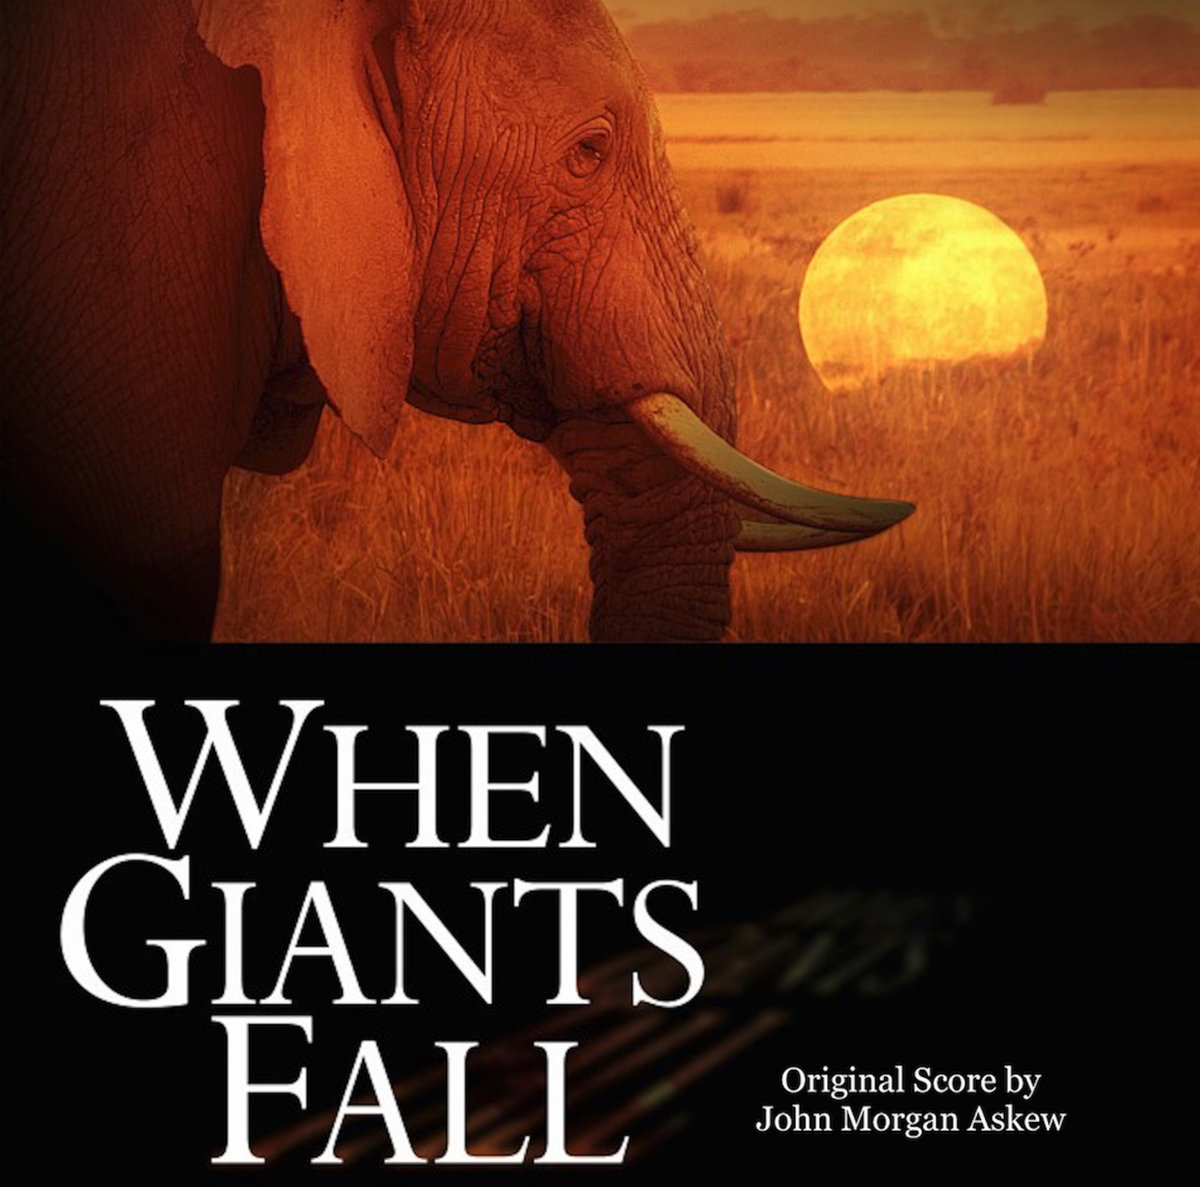 John Morgan Askew - When Giants Fall